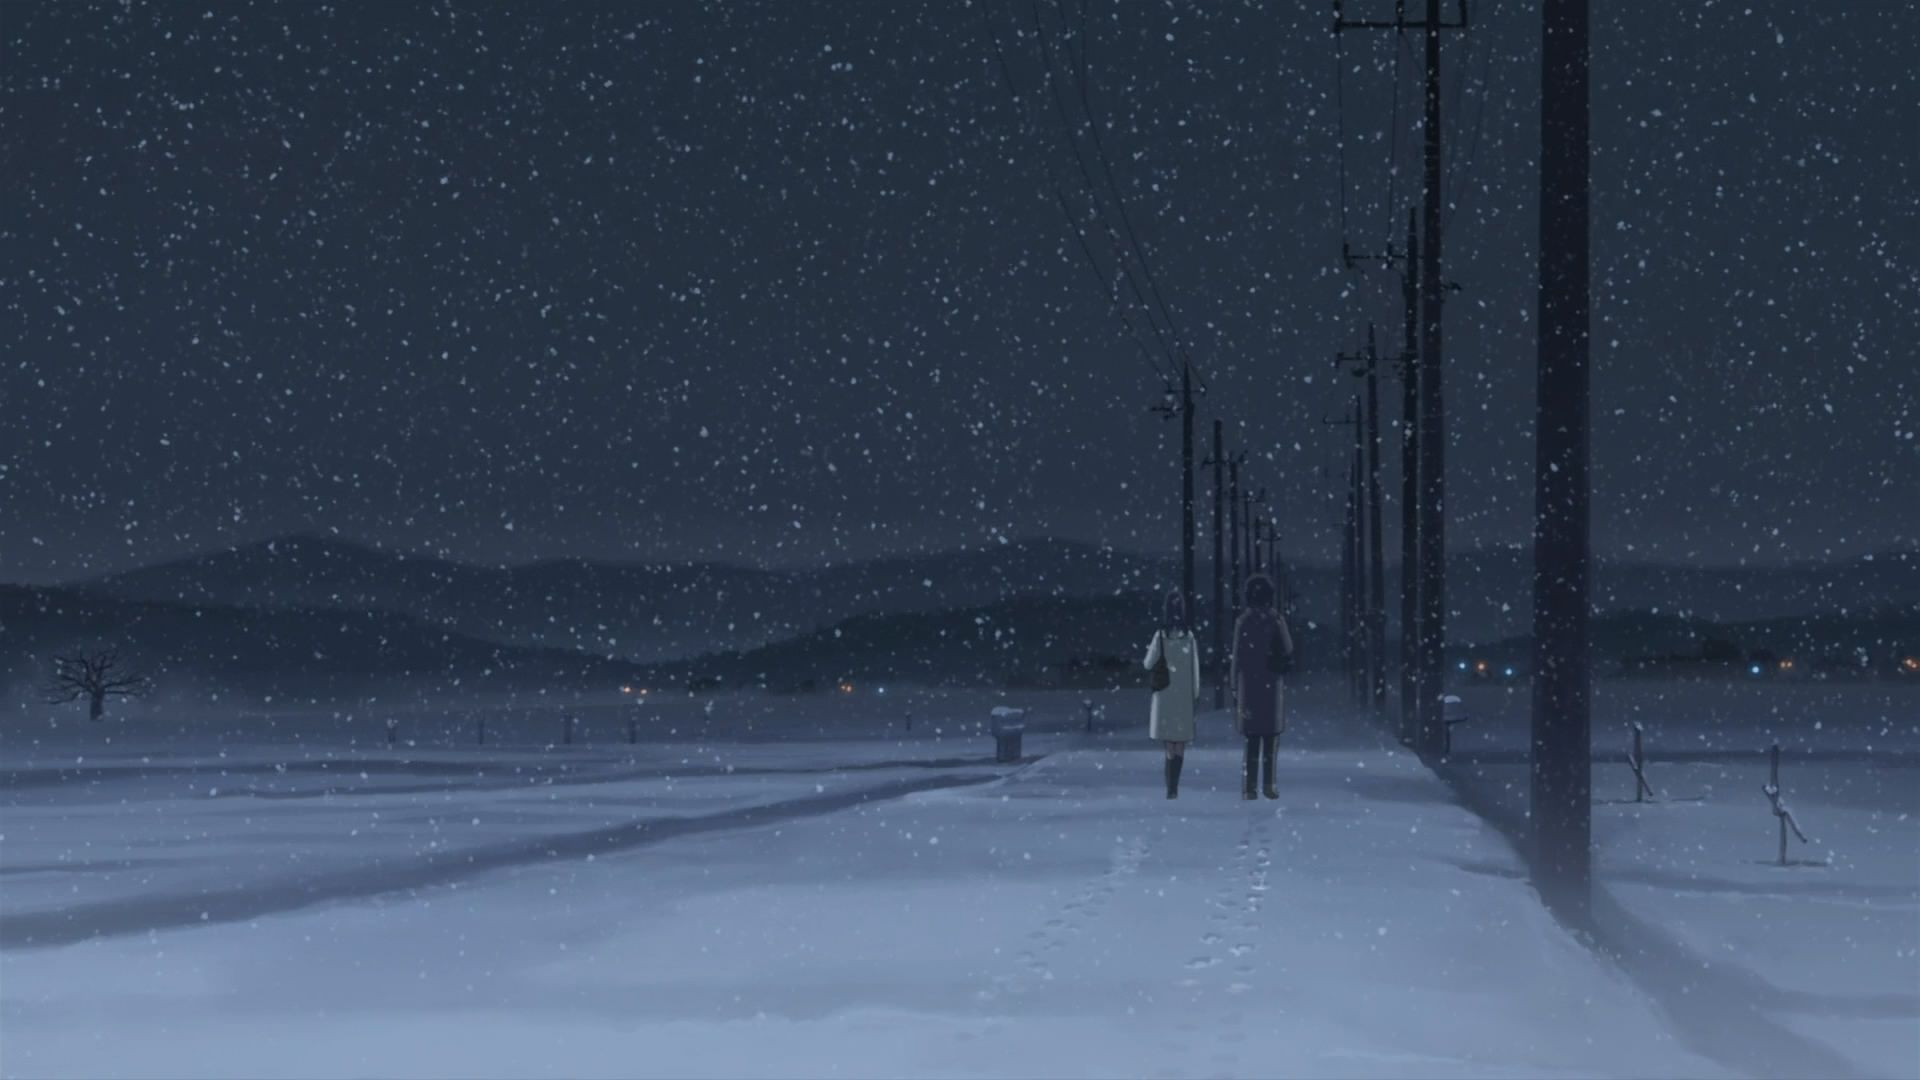 5 Centimeters Per Second Wallpaper Wallpapers HD